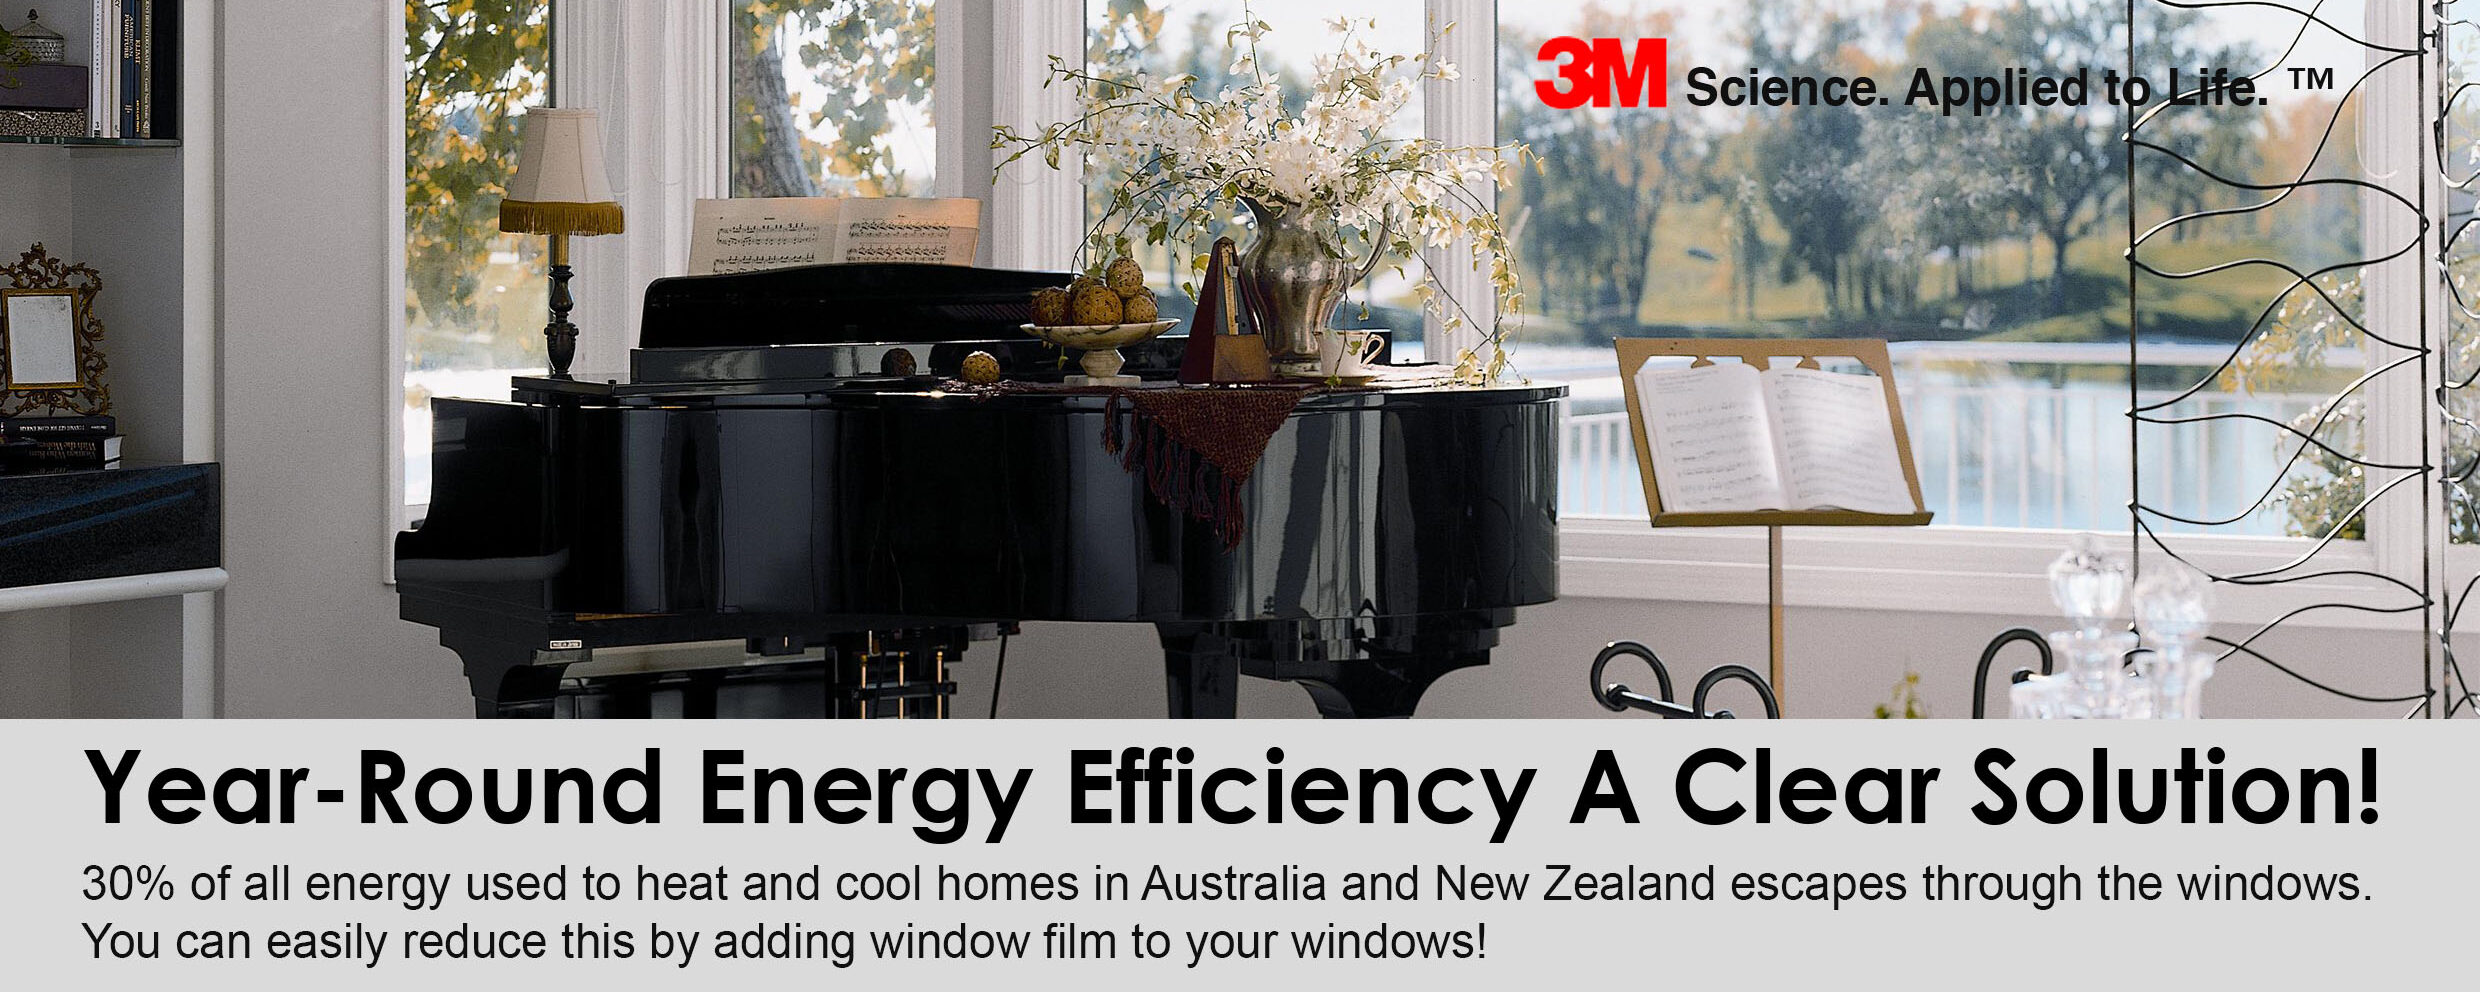 3M-Energy-Efficiency-A-Clear-Solution